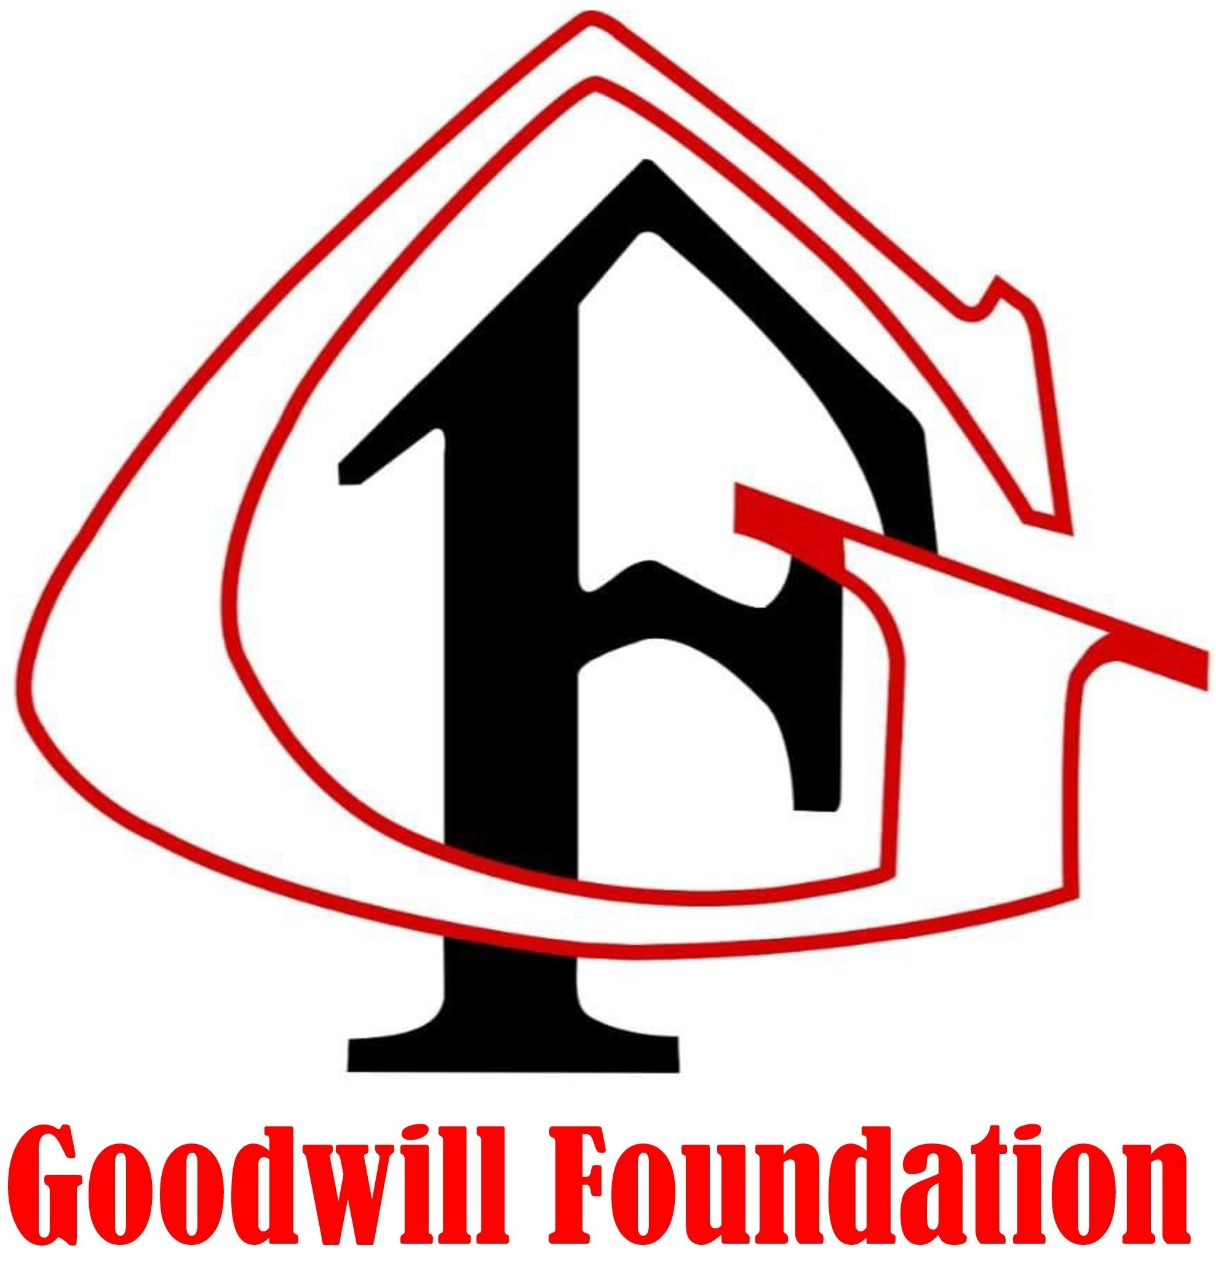 Goodwill Foundation homepage